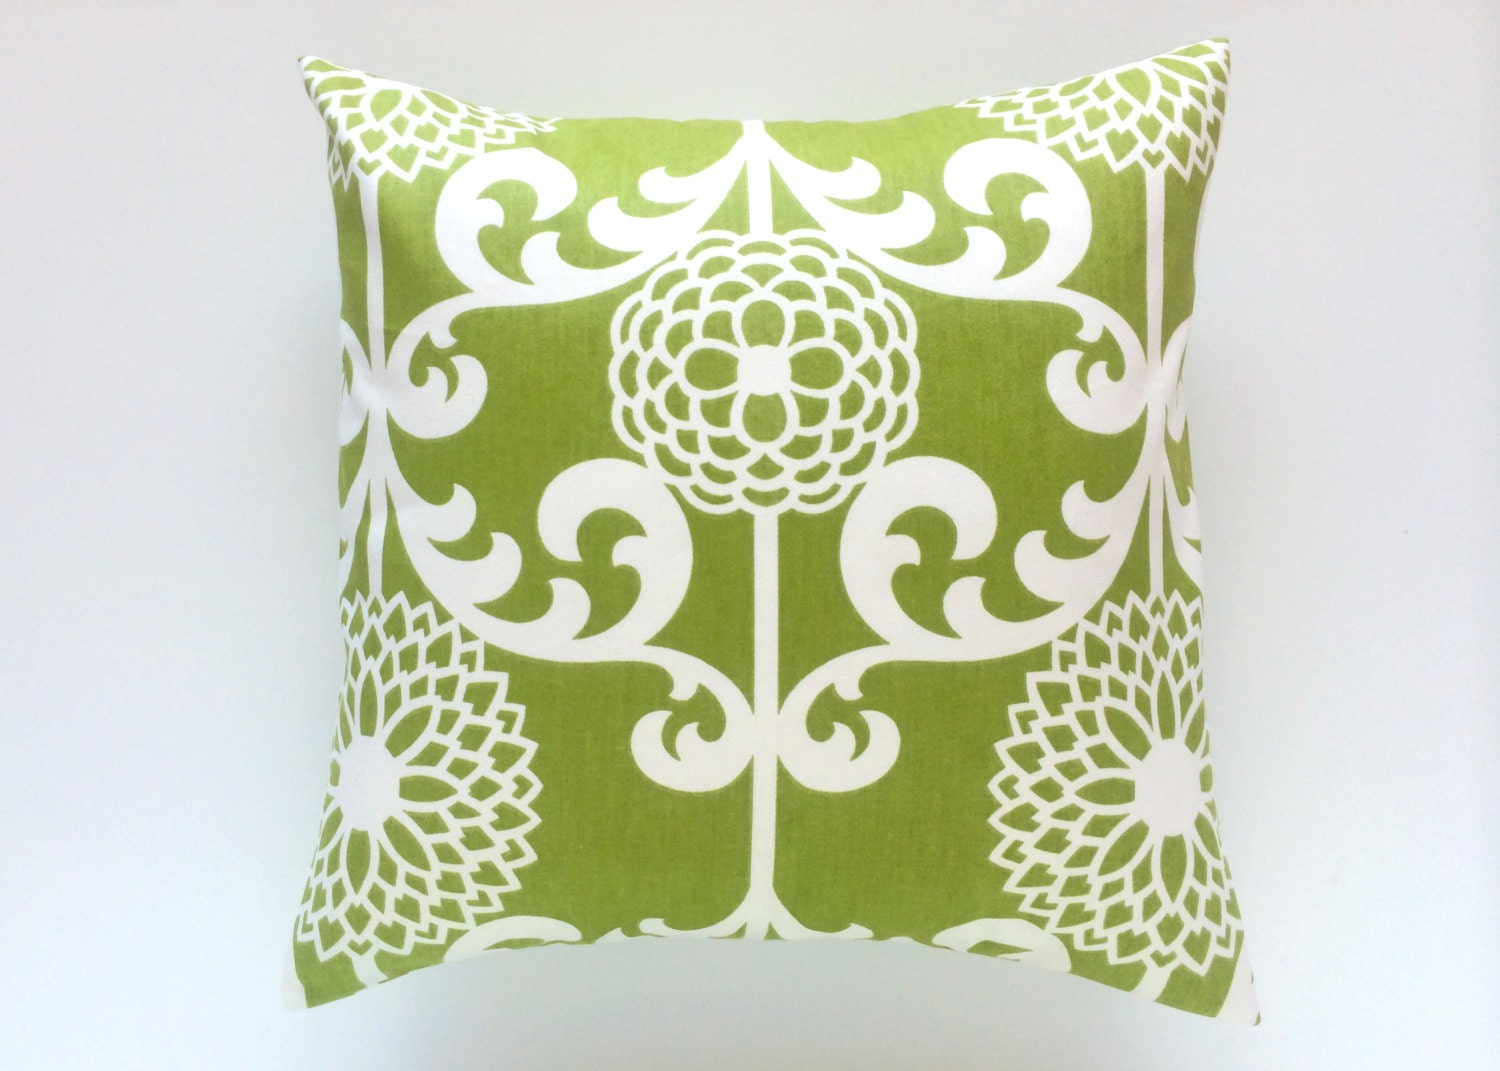 Decorative Throw Pillows Clearance : CLEARANCE Green Floral Decorative Pillow Cover. by thebluebirdshop